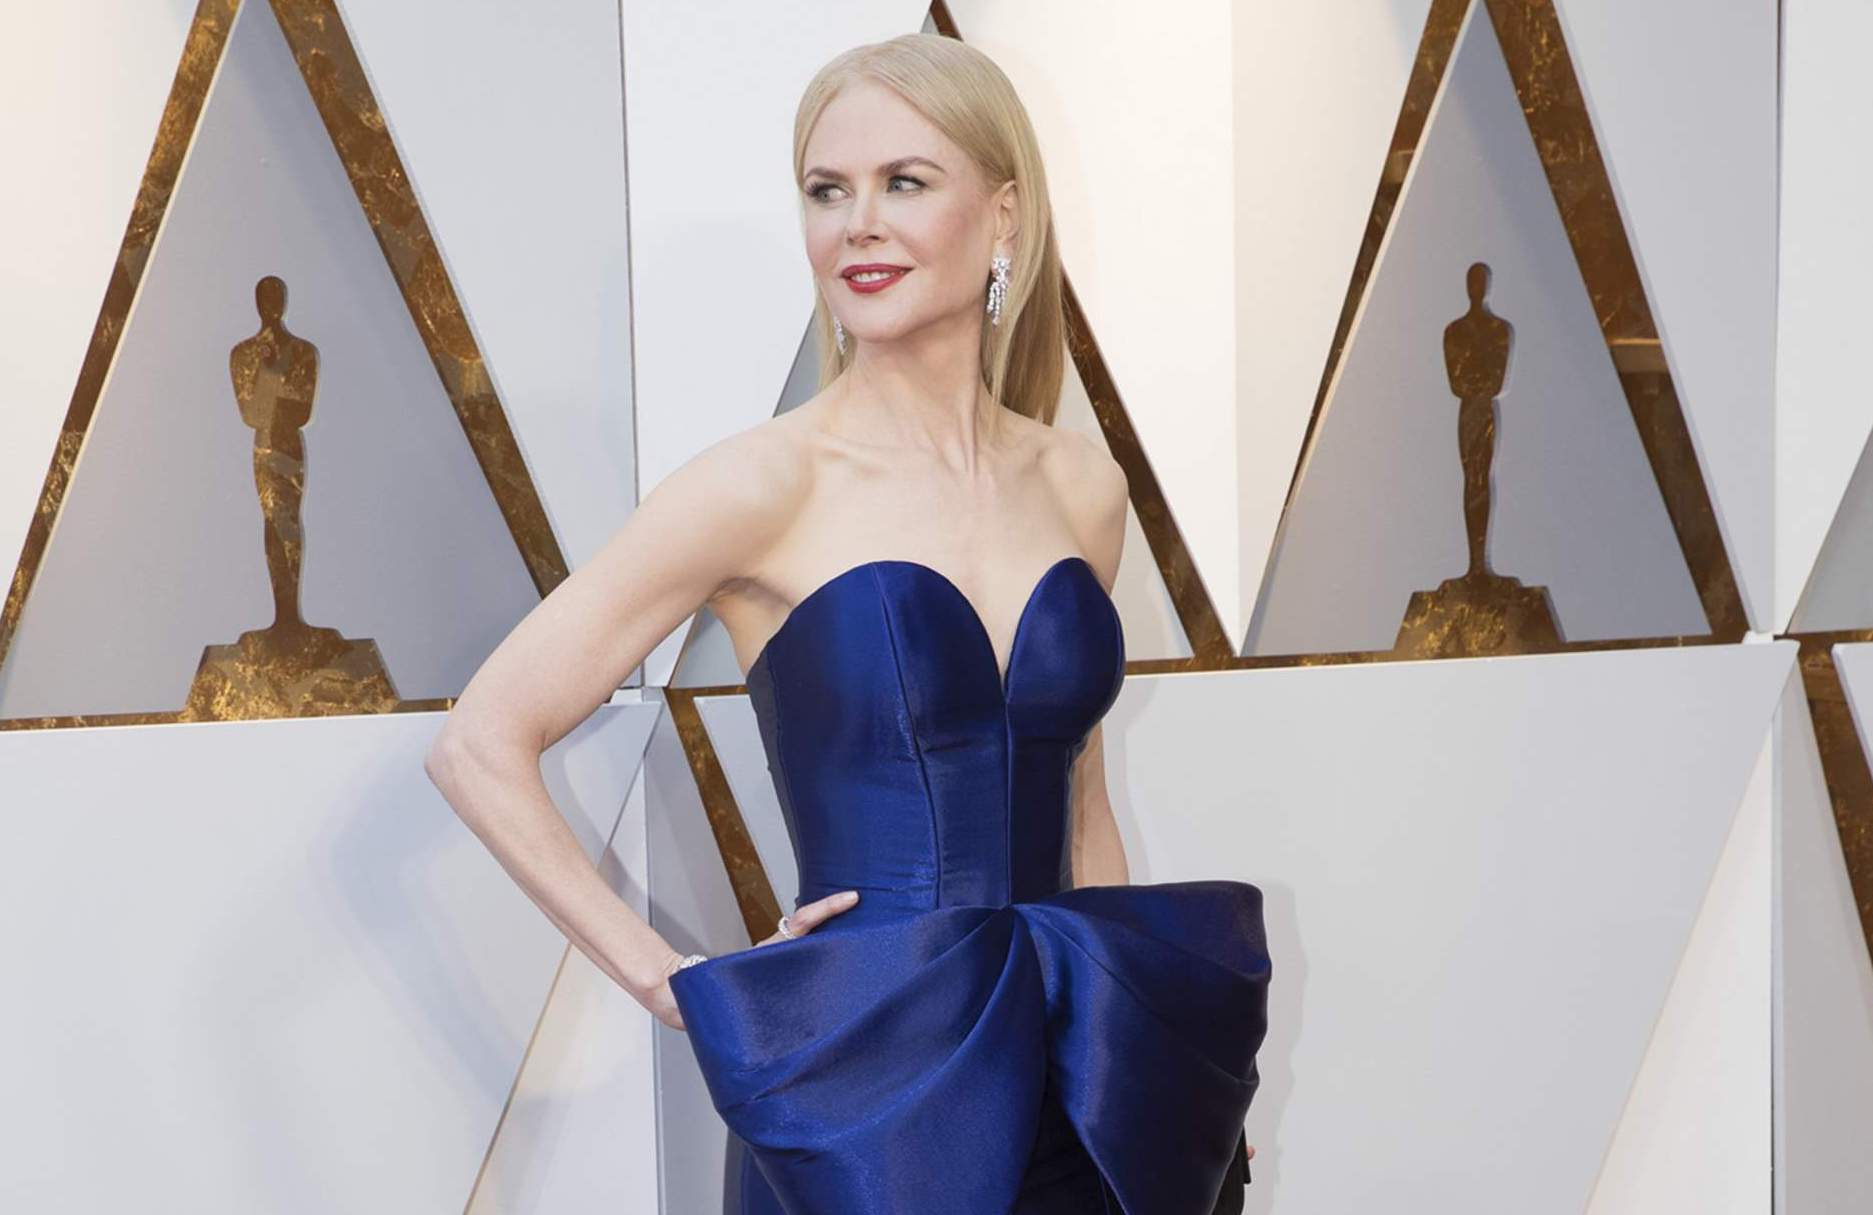 - The fashion report: Oscars 2018Nicole Kidman in Armani Privé: It would have been bold even in black, but the blue was electric. Bravo to Kidman and stylist Julia von Boehm.